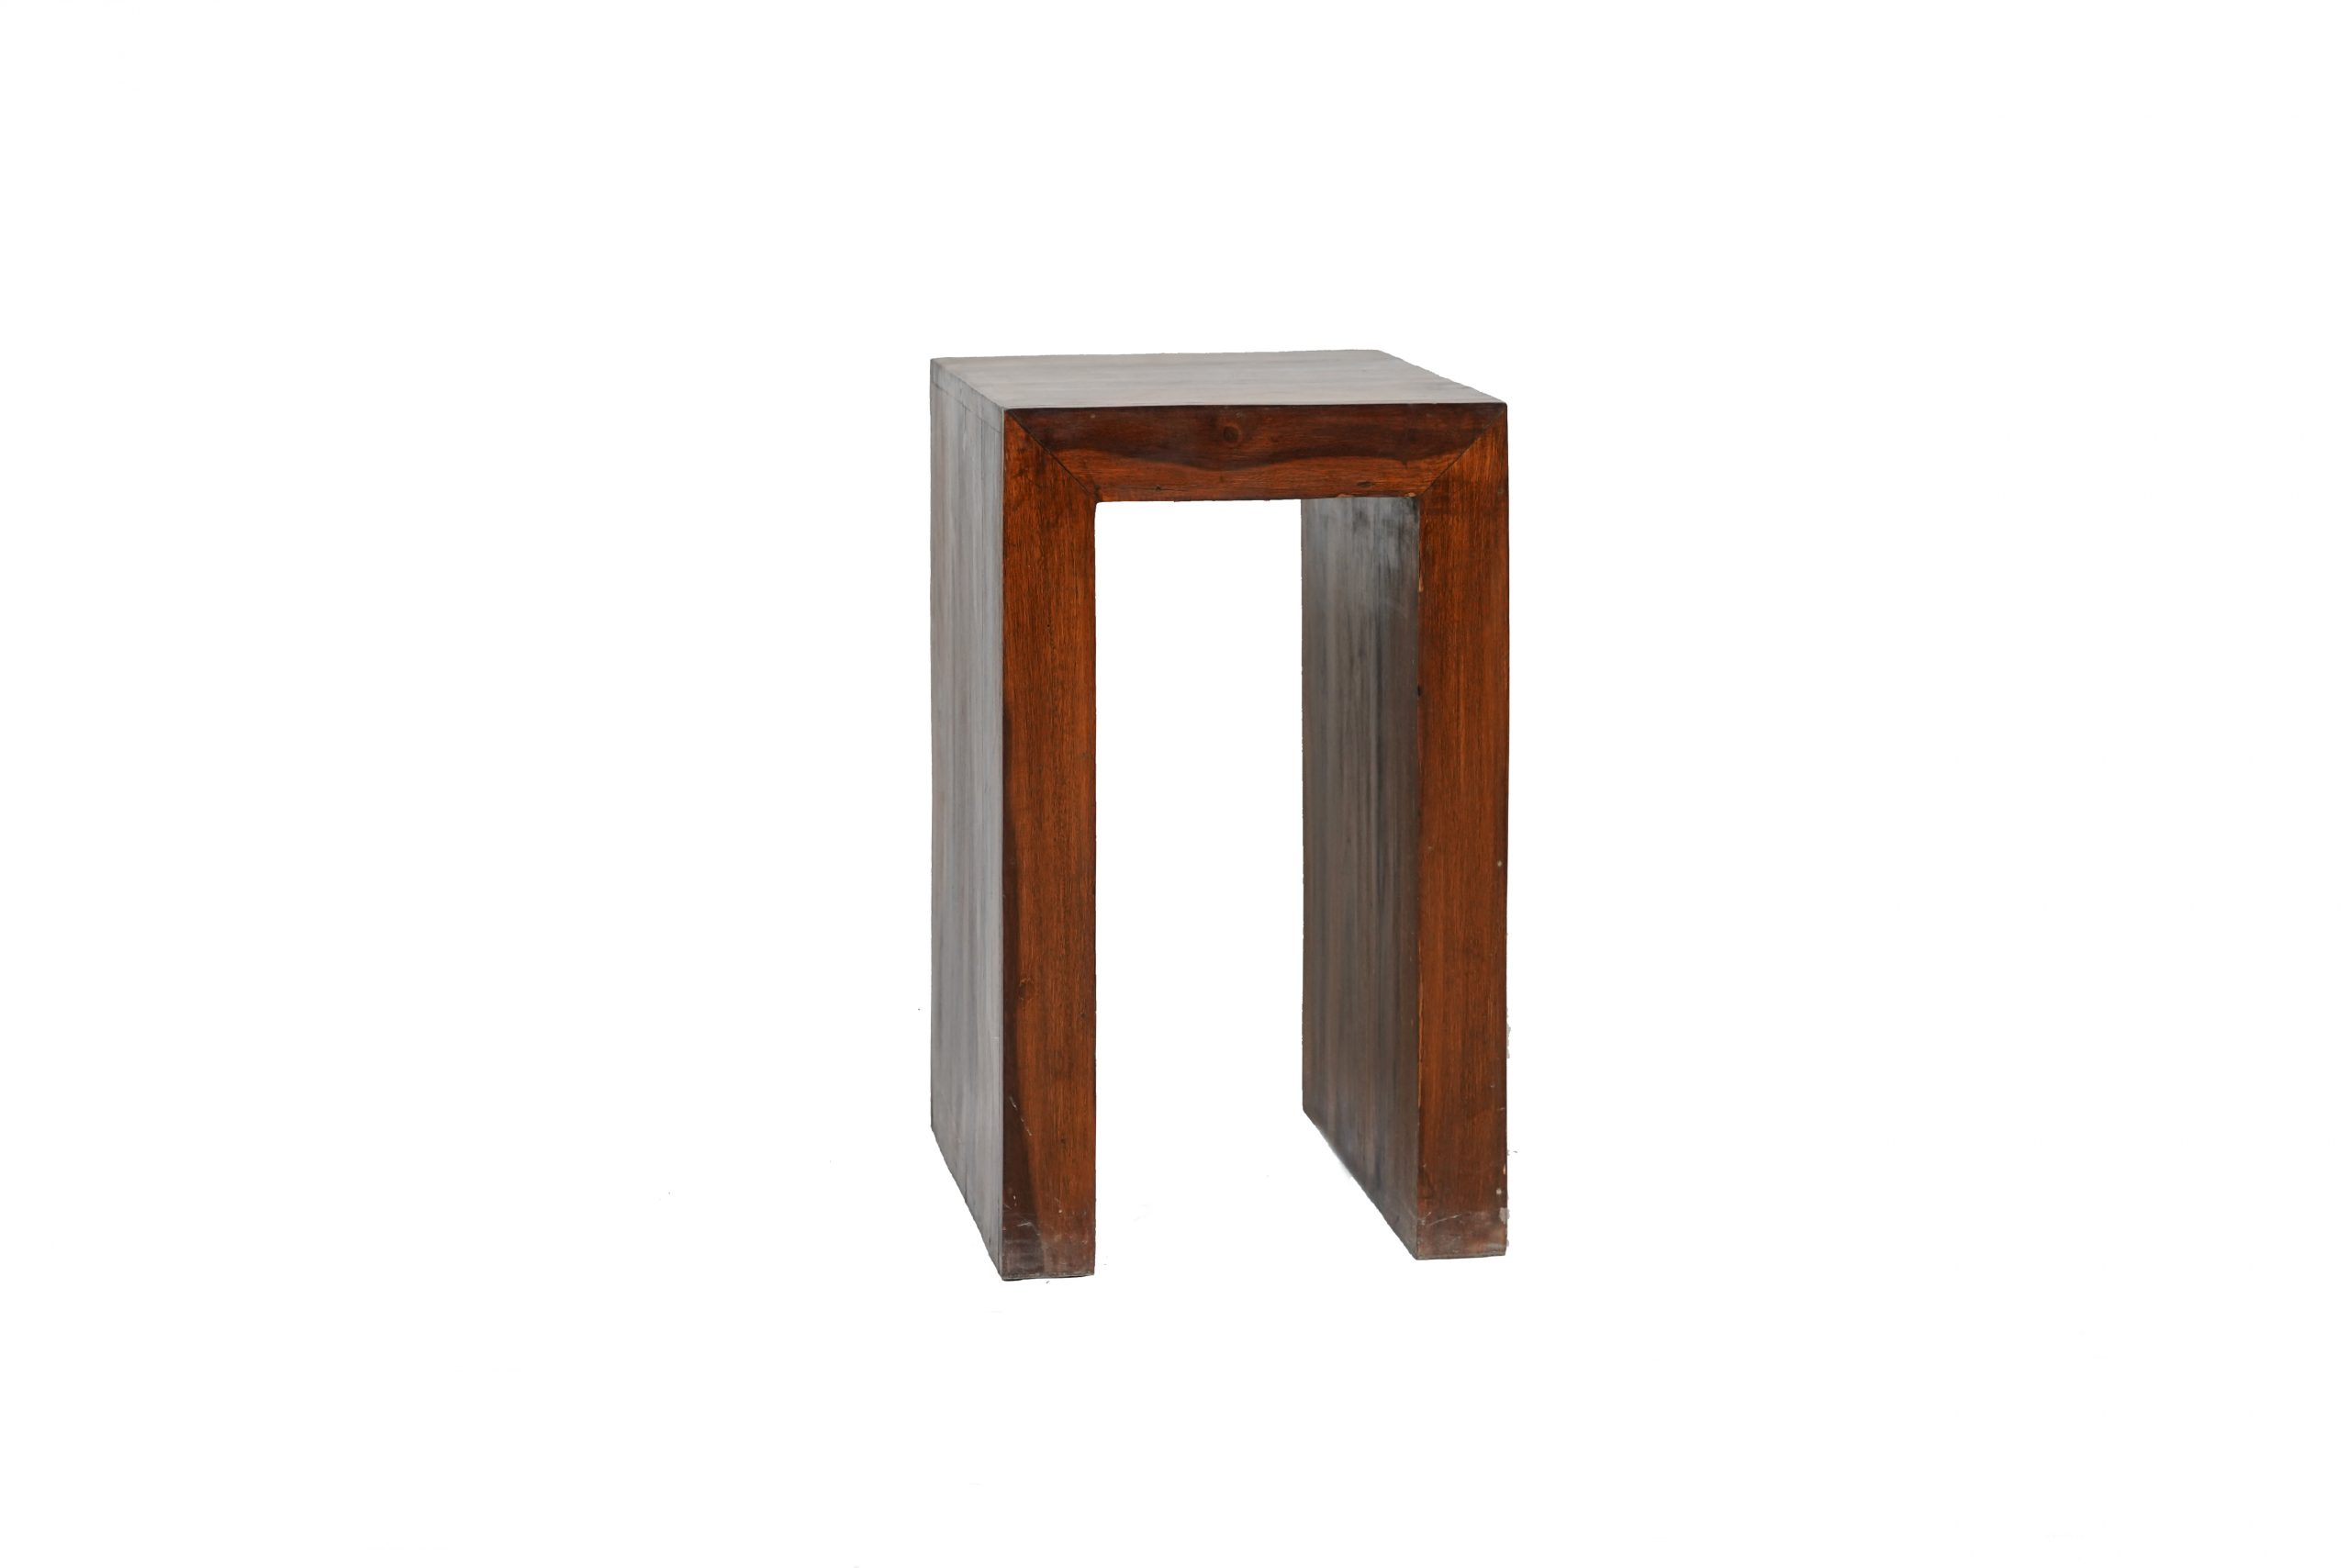 A wooden stool